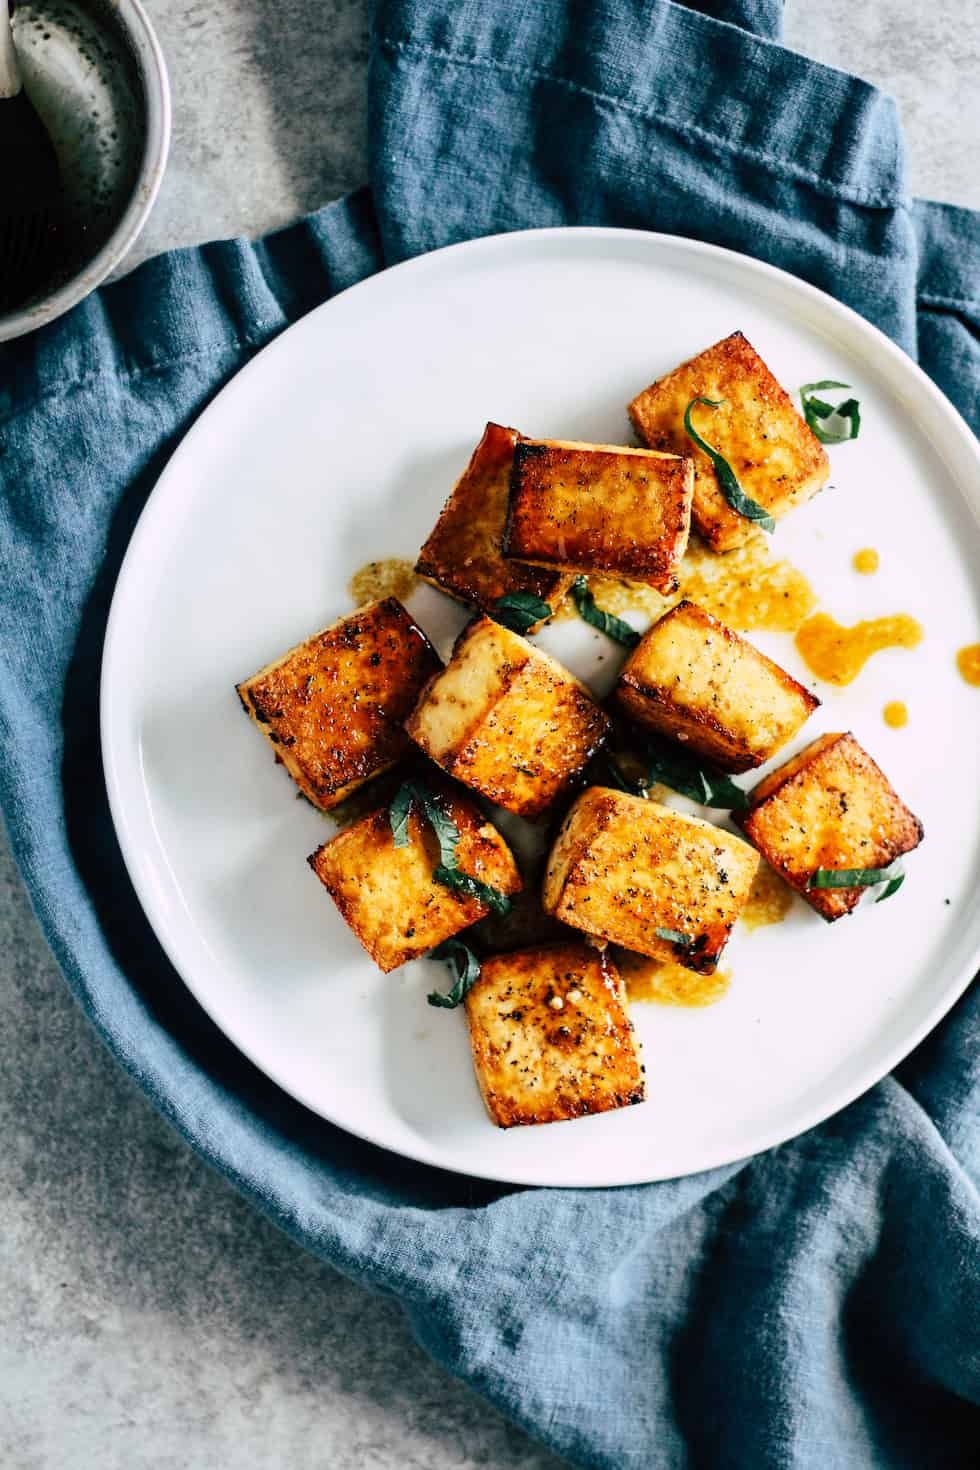 Crispy tofu on white plate with blue napkin and bowl of garlic soy sauce.